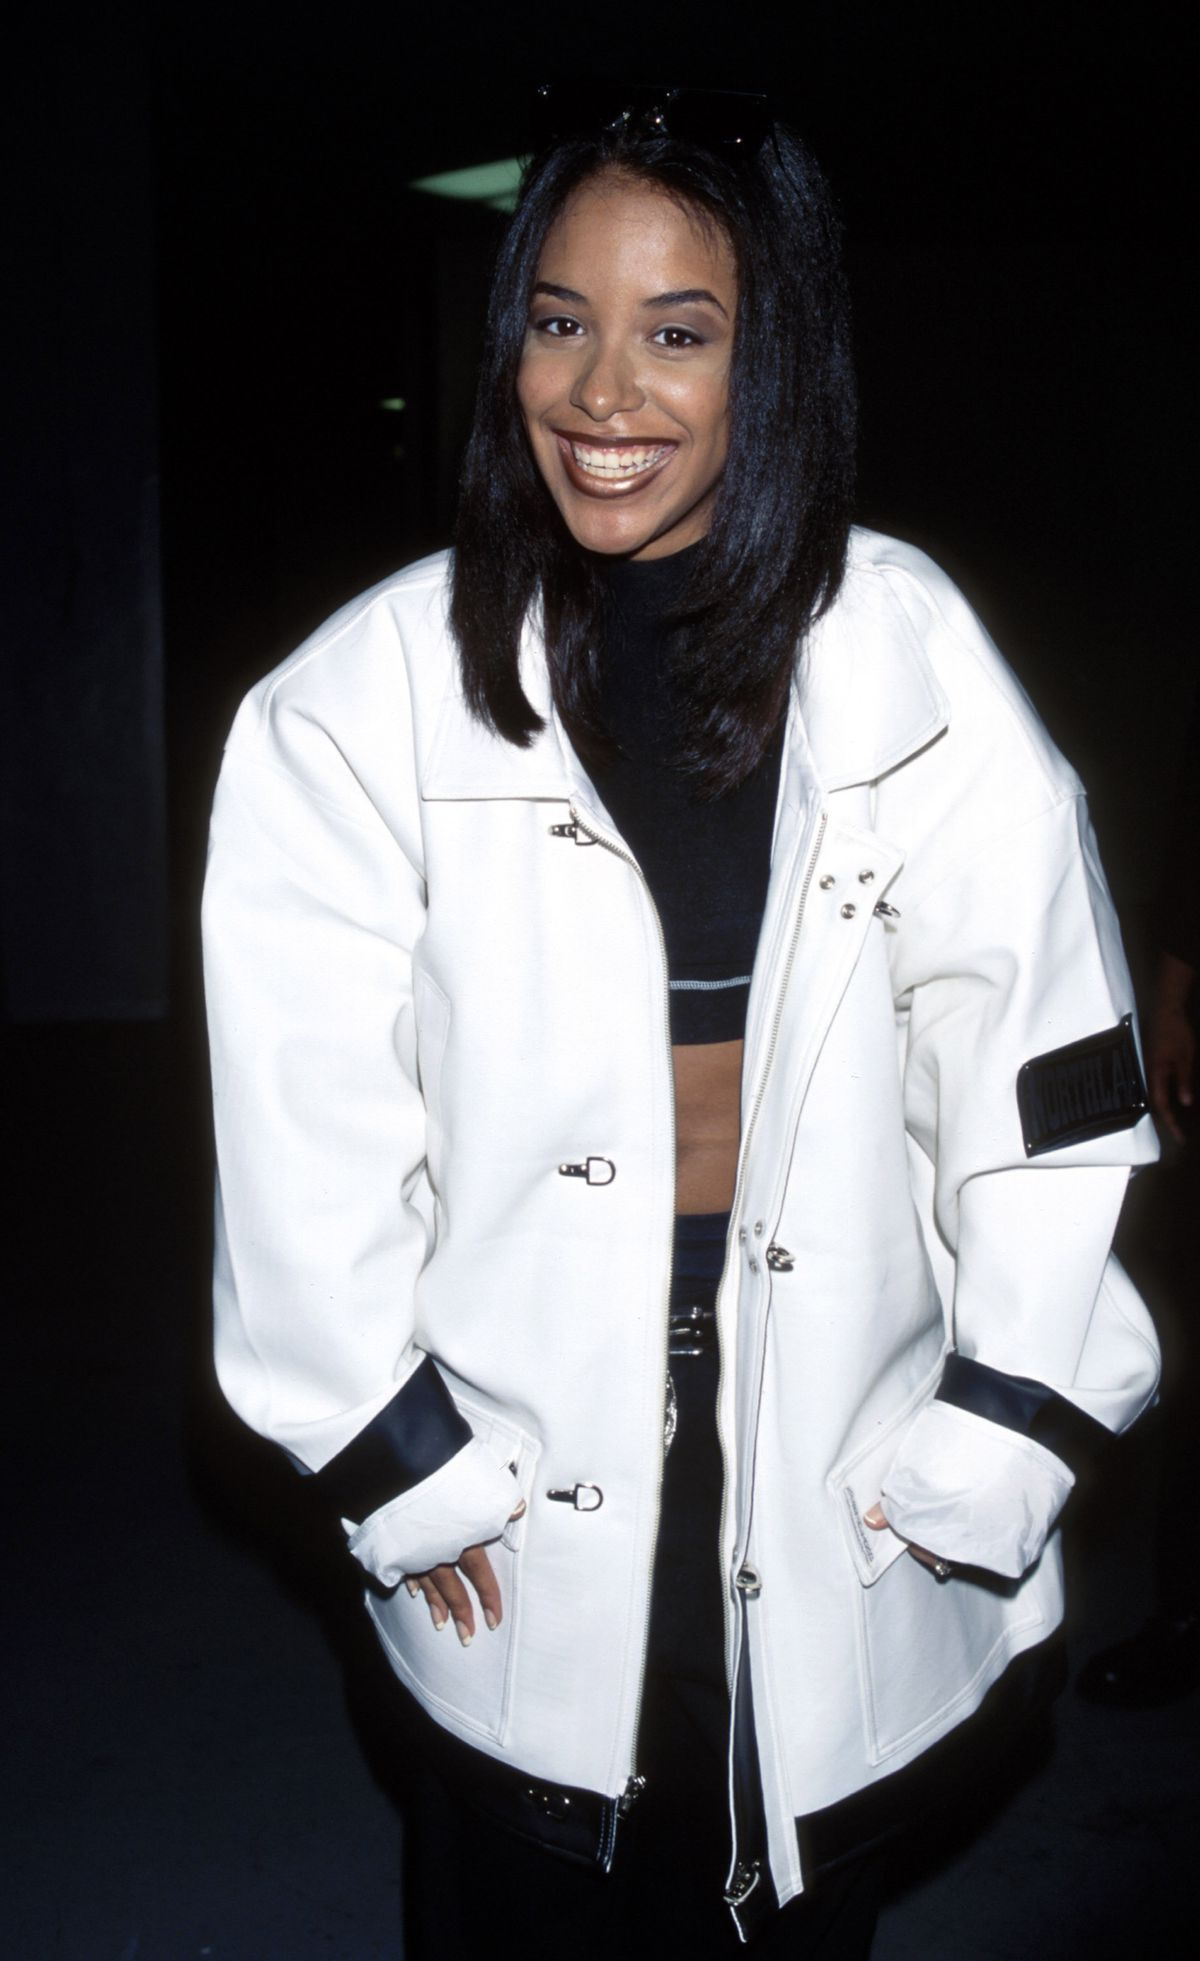 Aaliyah in '90s style oversized clothing.